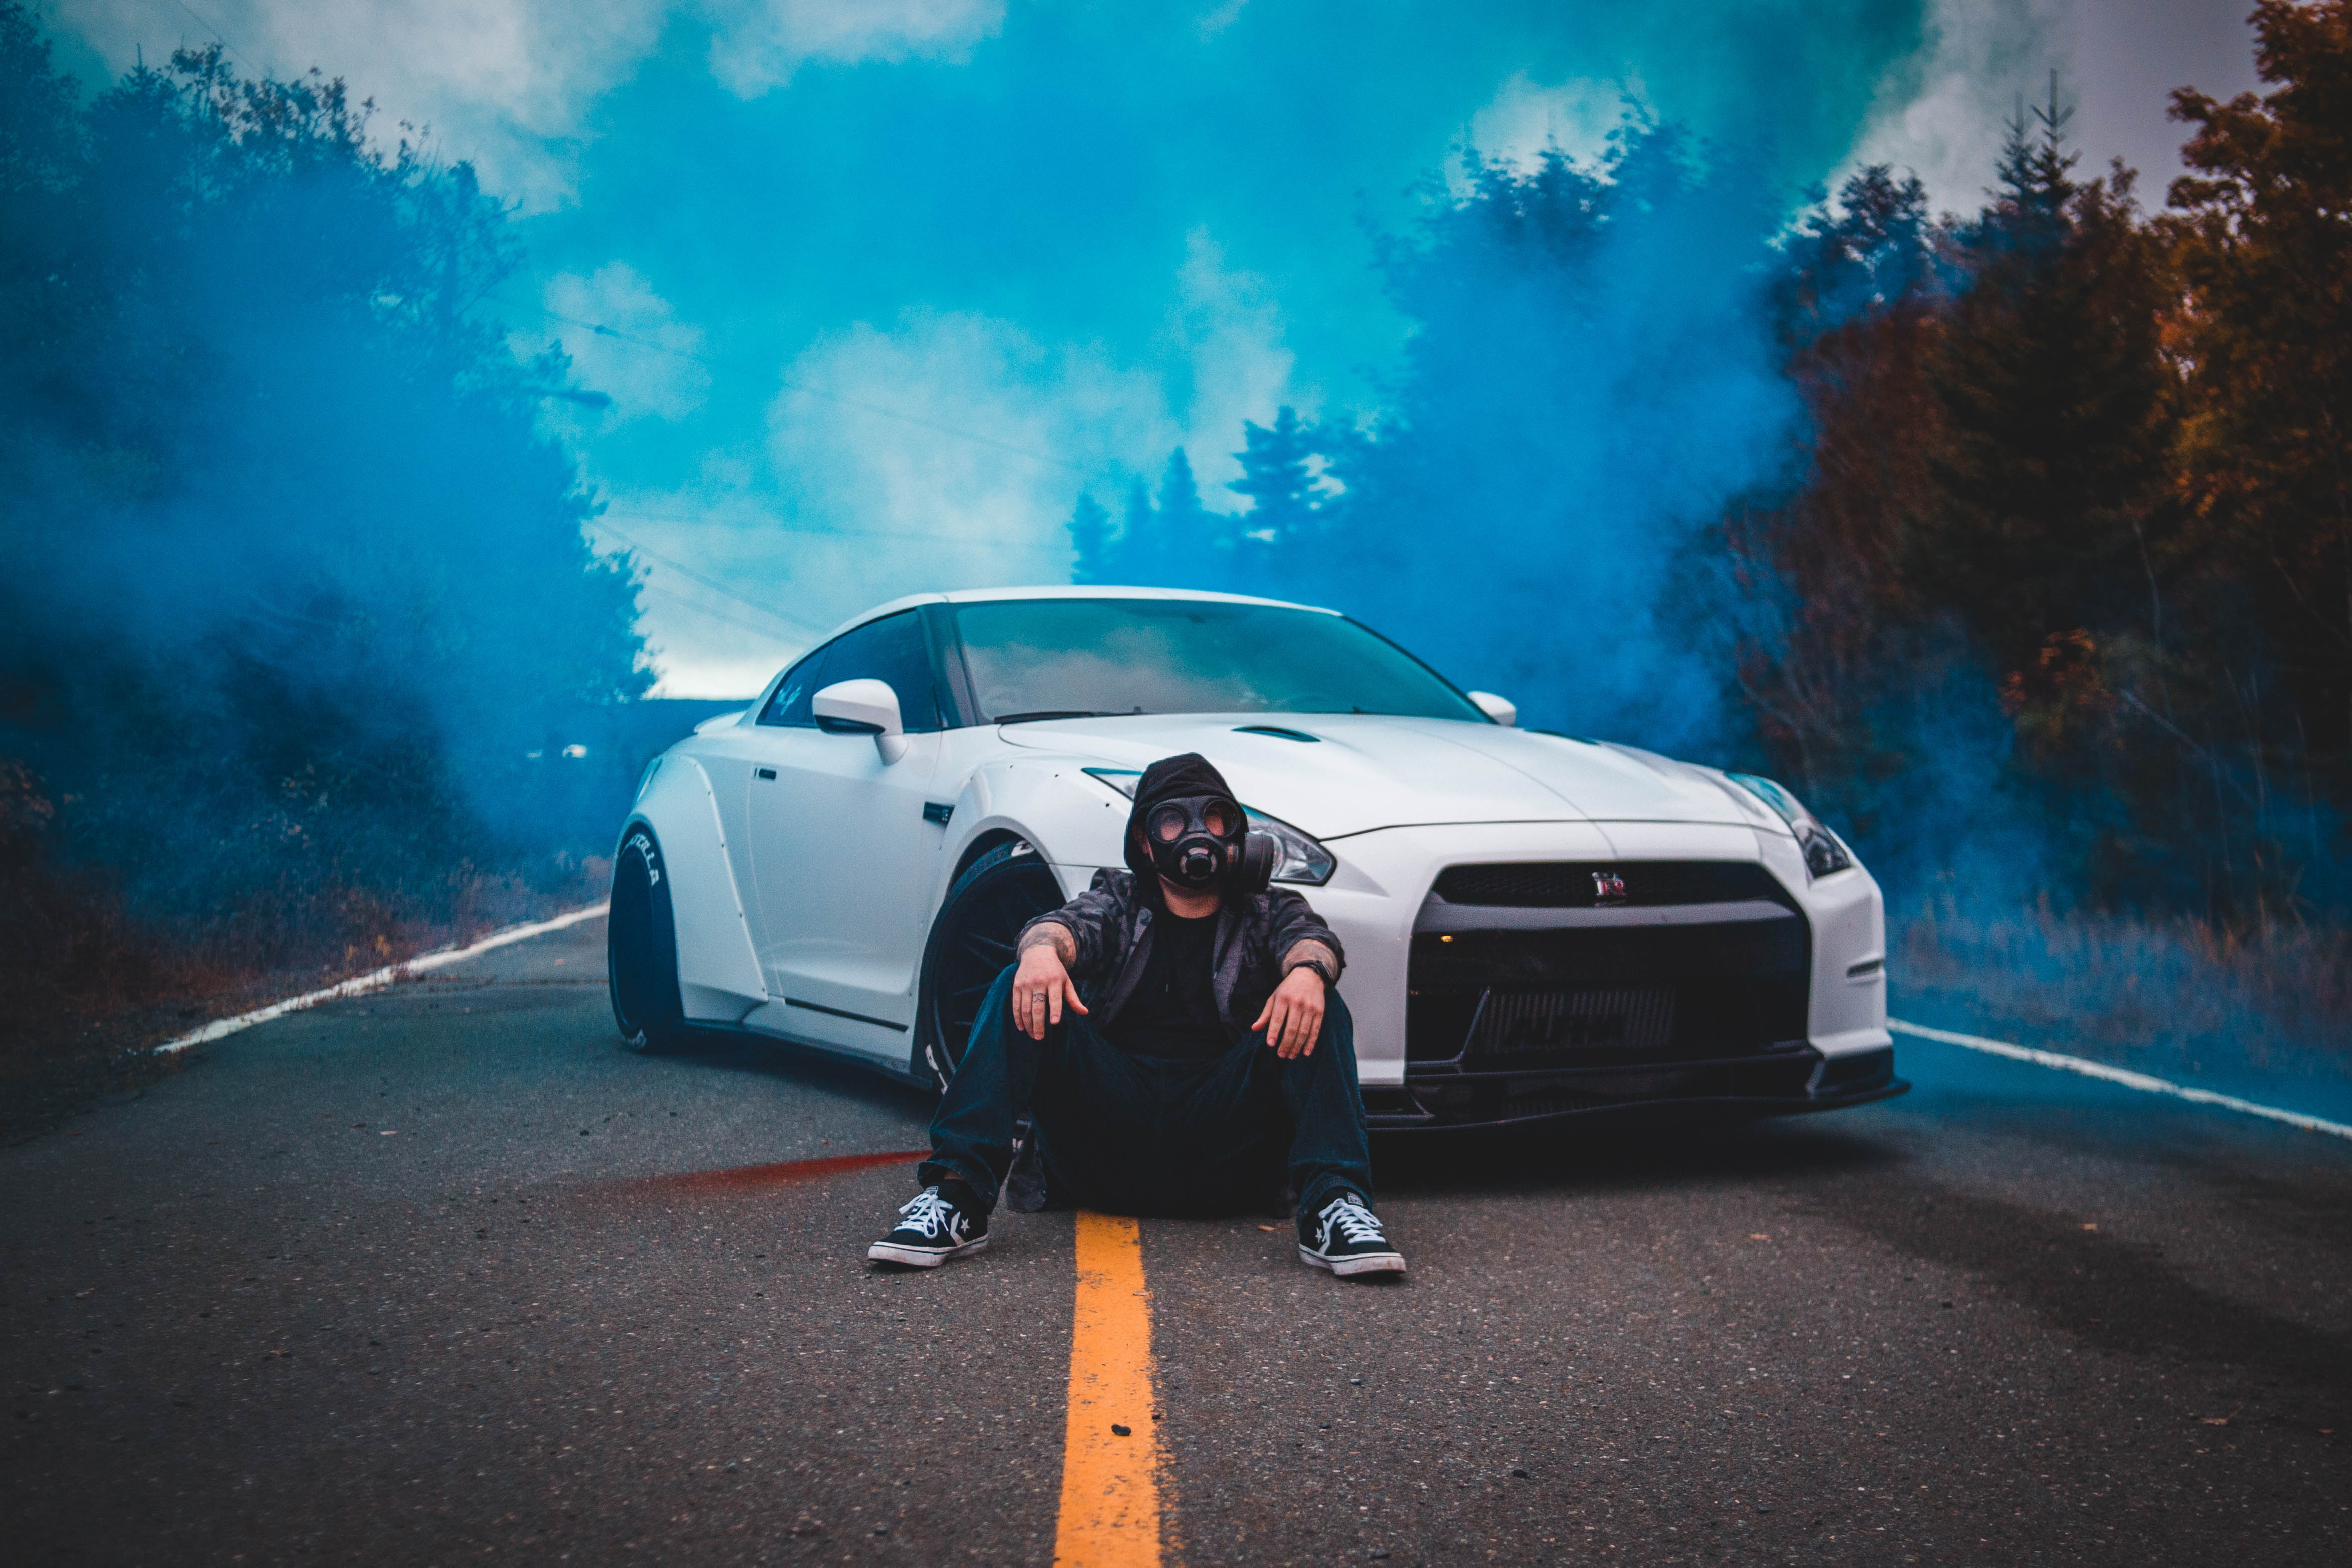 116177 download wallpaper Smoke, Miscellanea, Miscellaneous, Car, Machine, Mask, Gas Mask, Human, Person, Cloud screensavers and pictures for free